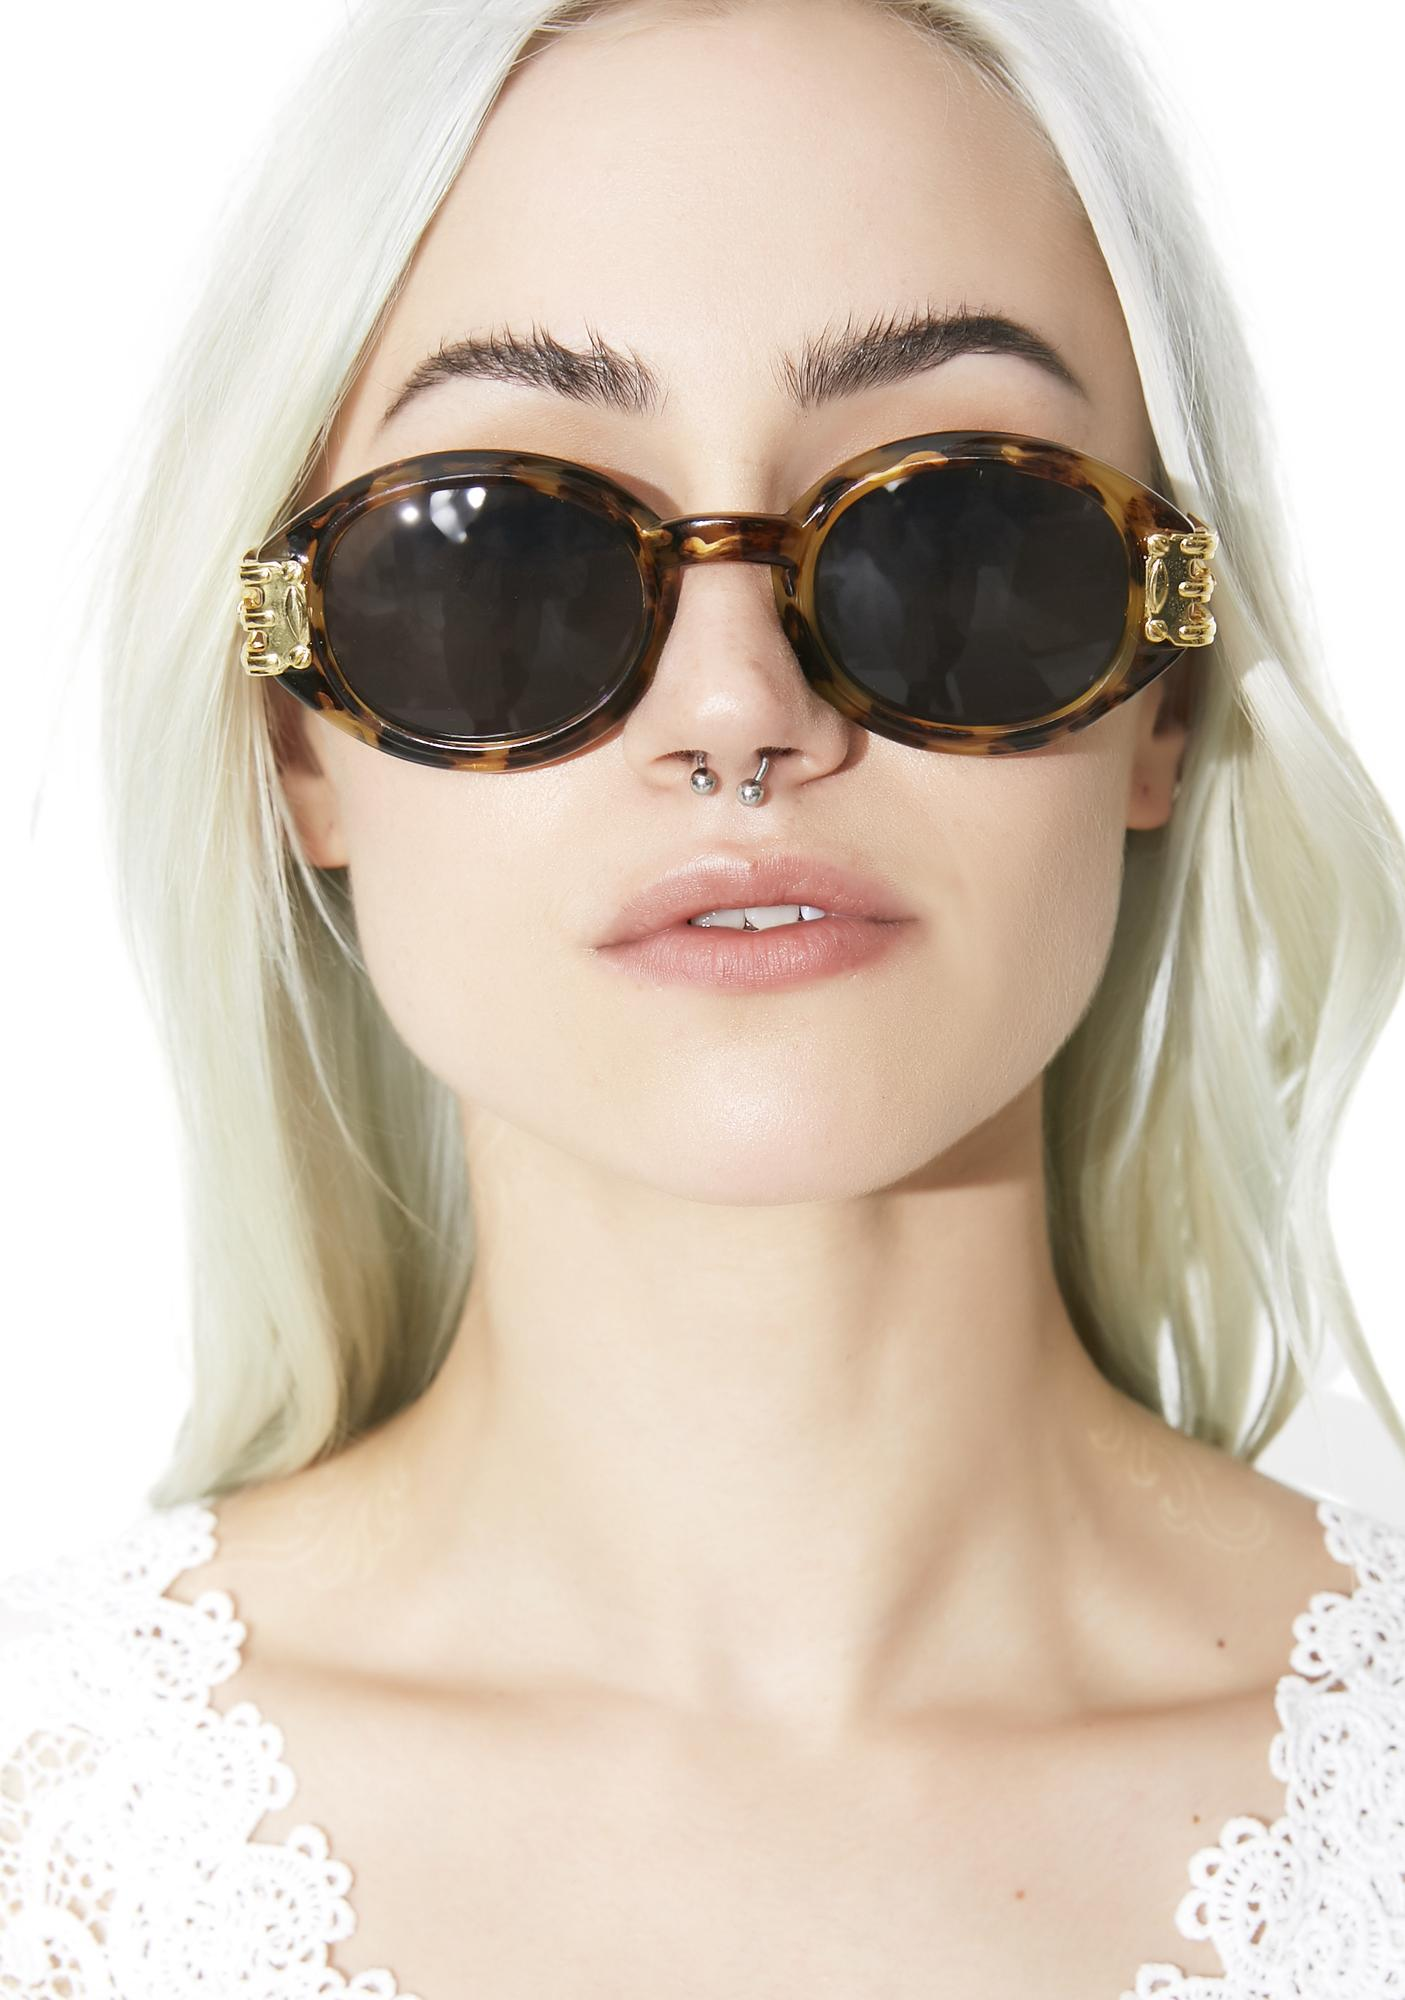 Cold Motive Sunglasses